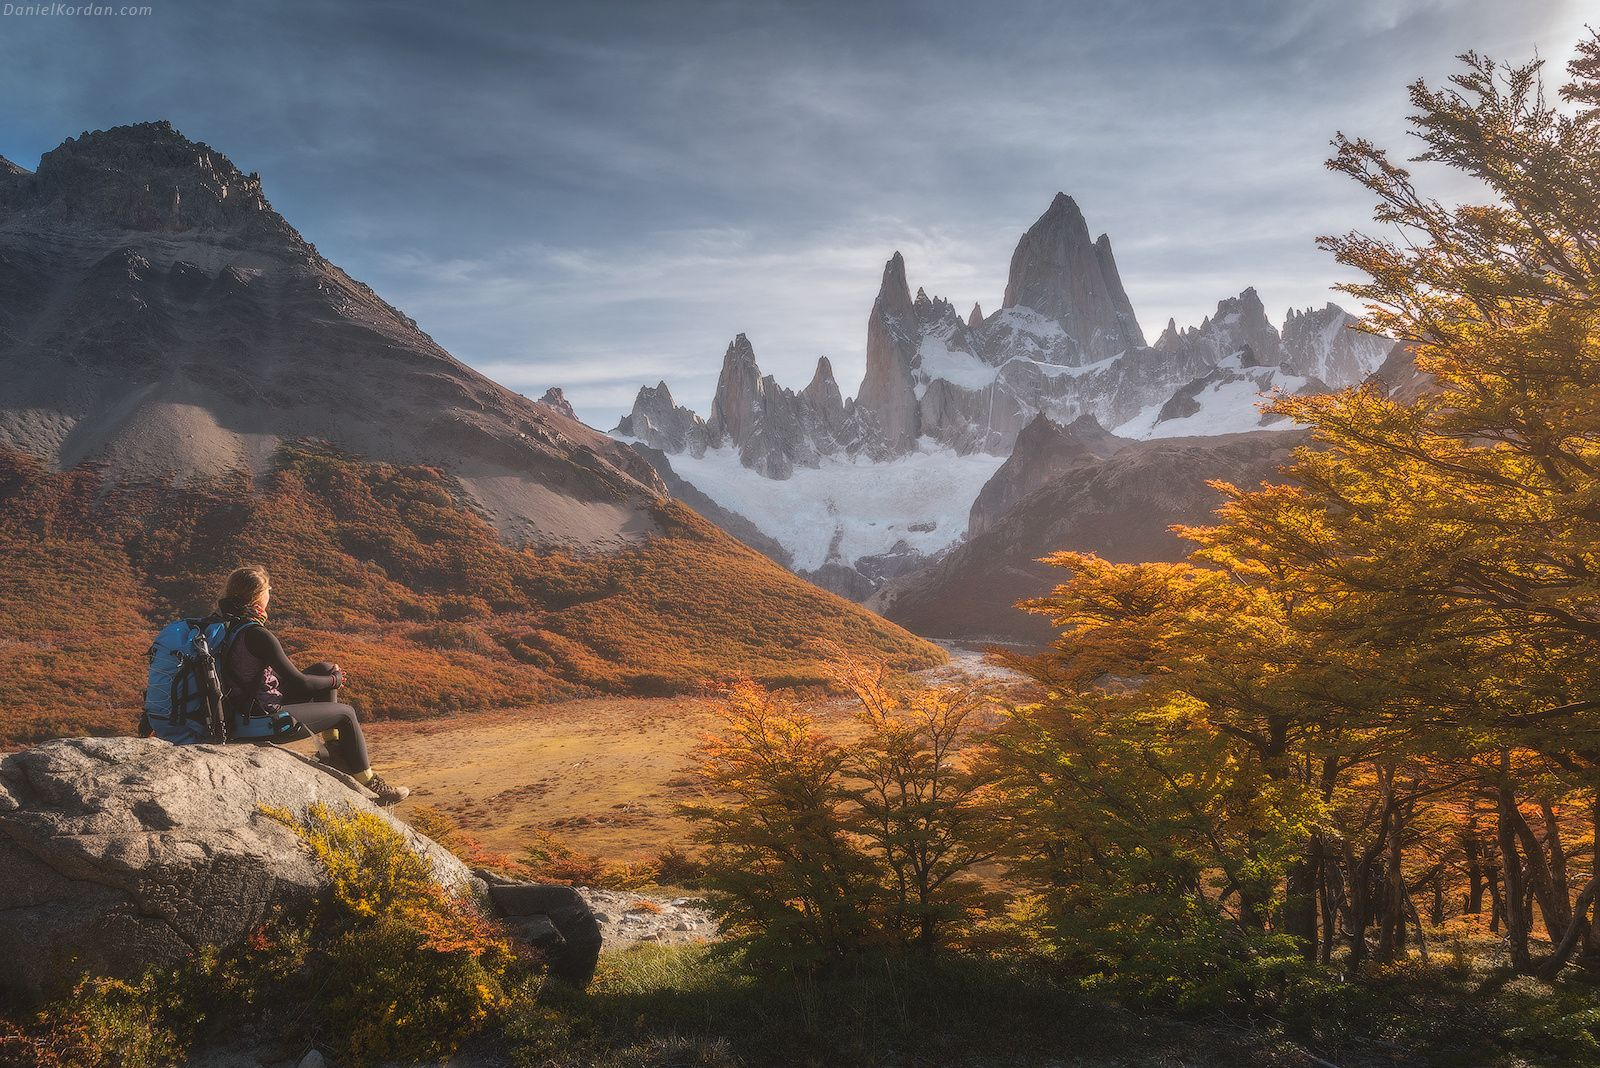 Patagonia hikes - Fitzroy hikes... What a warm memory they left. Although nights were cold sometimes, even down to -8 C, photos we took bring so pleasant memories. Memories from moments when you may just seat and enjoy the Autumn splendor of Patagonia forests and magnificent castle of Fitzroy (Chalten) mountain in front of you. Danielkordan.com